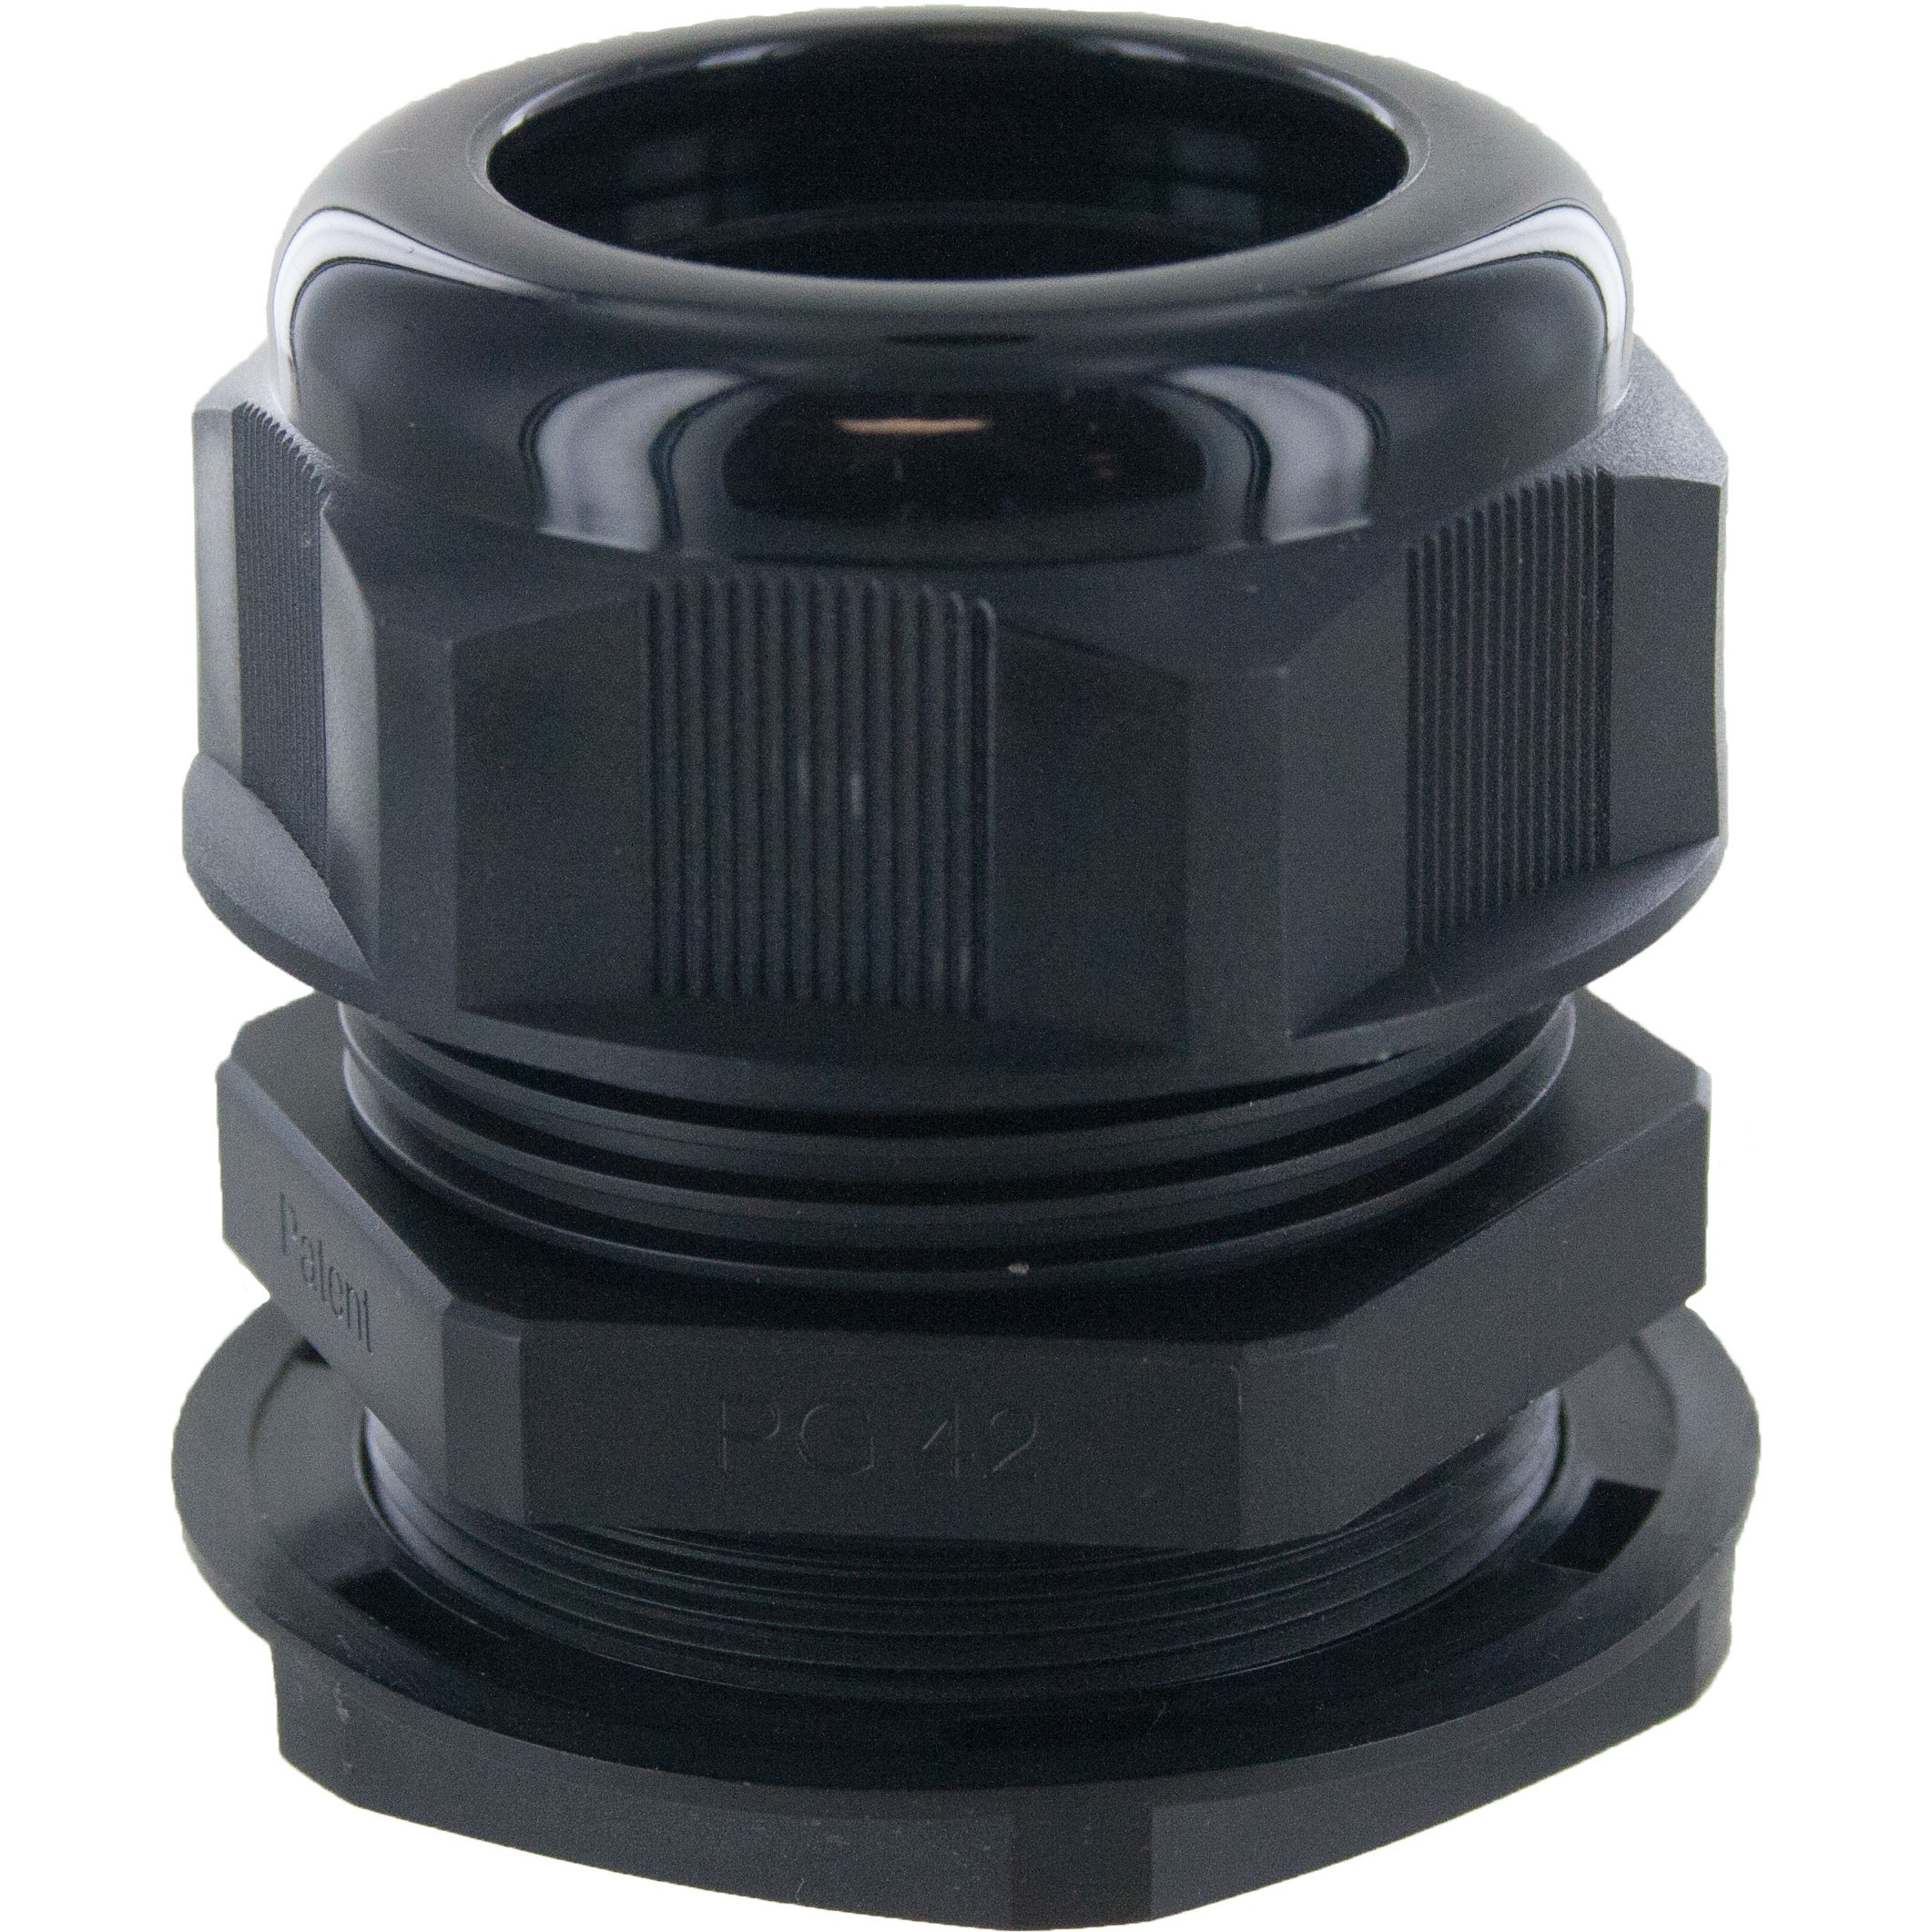 Nylon Dome Cap Cable Gland PG42 Black